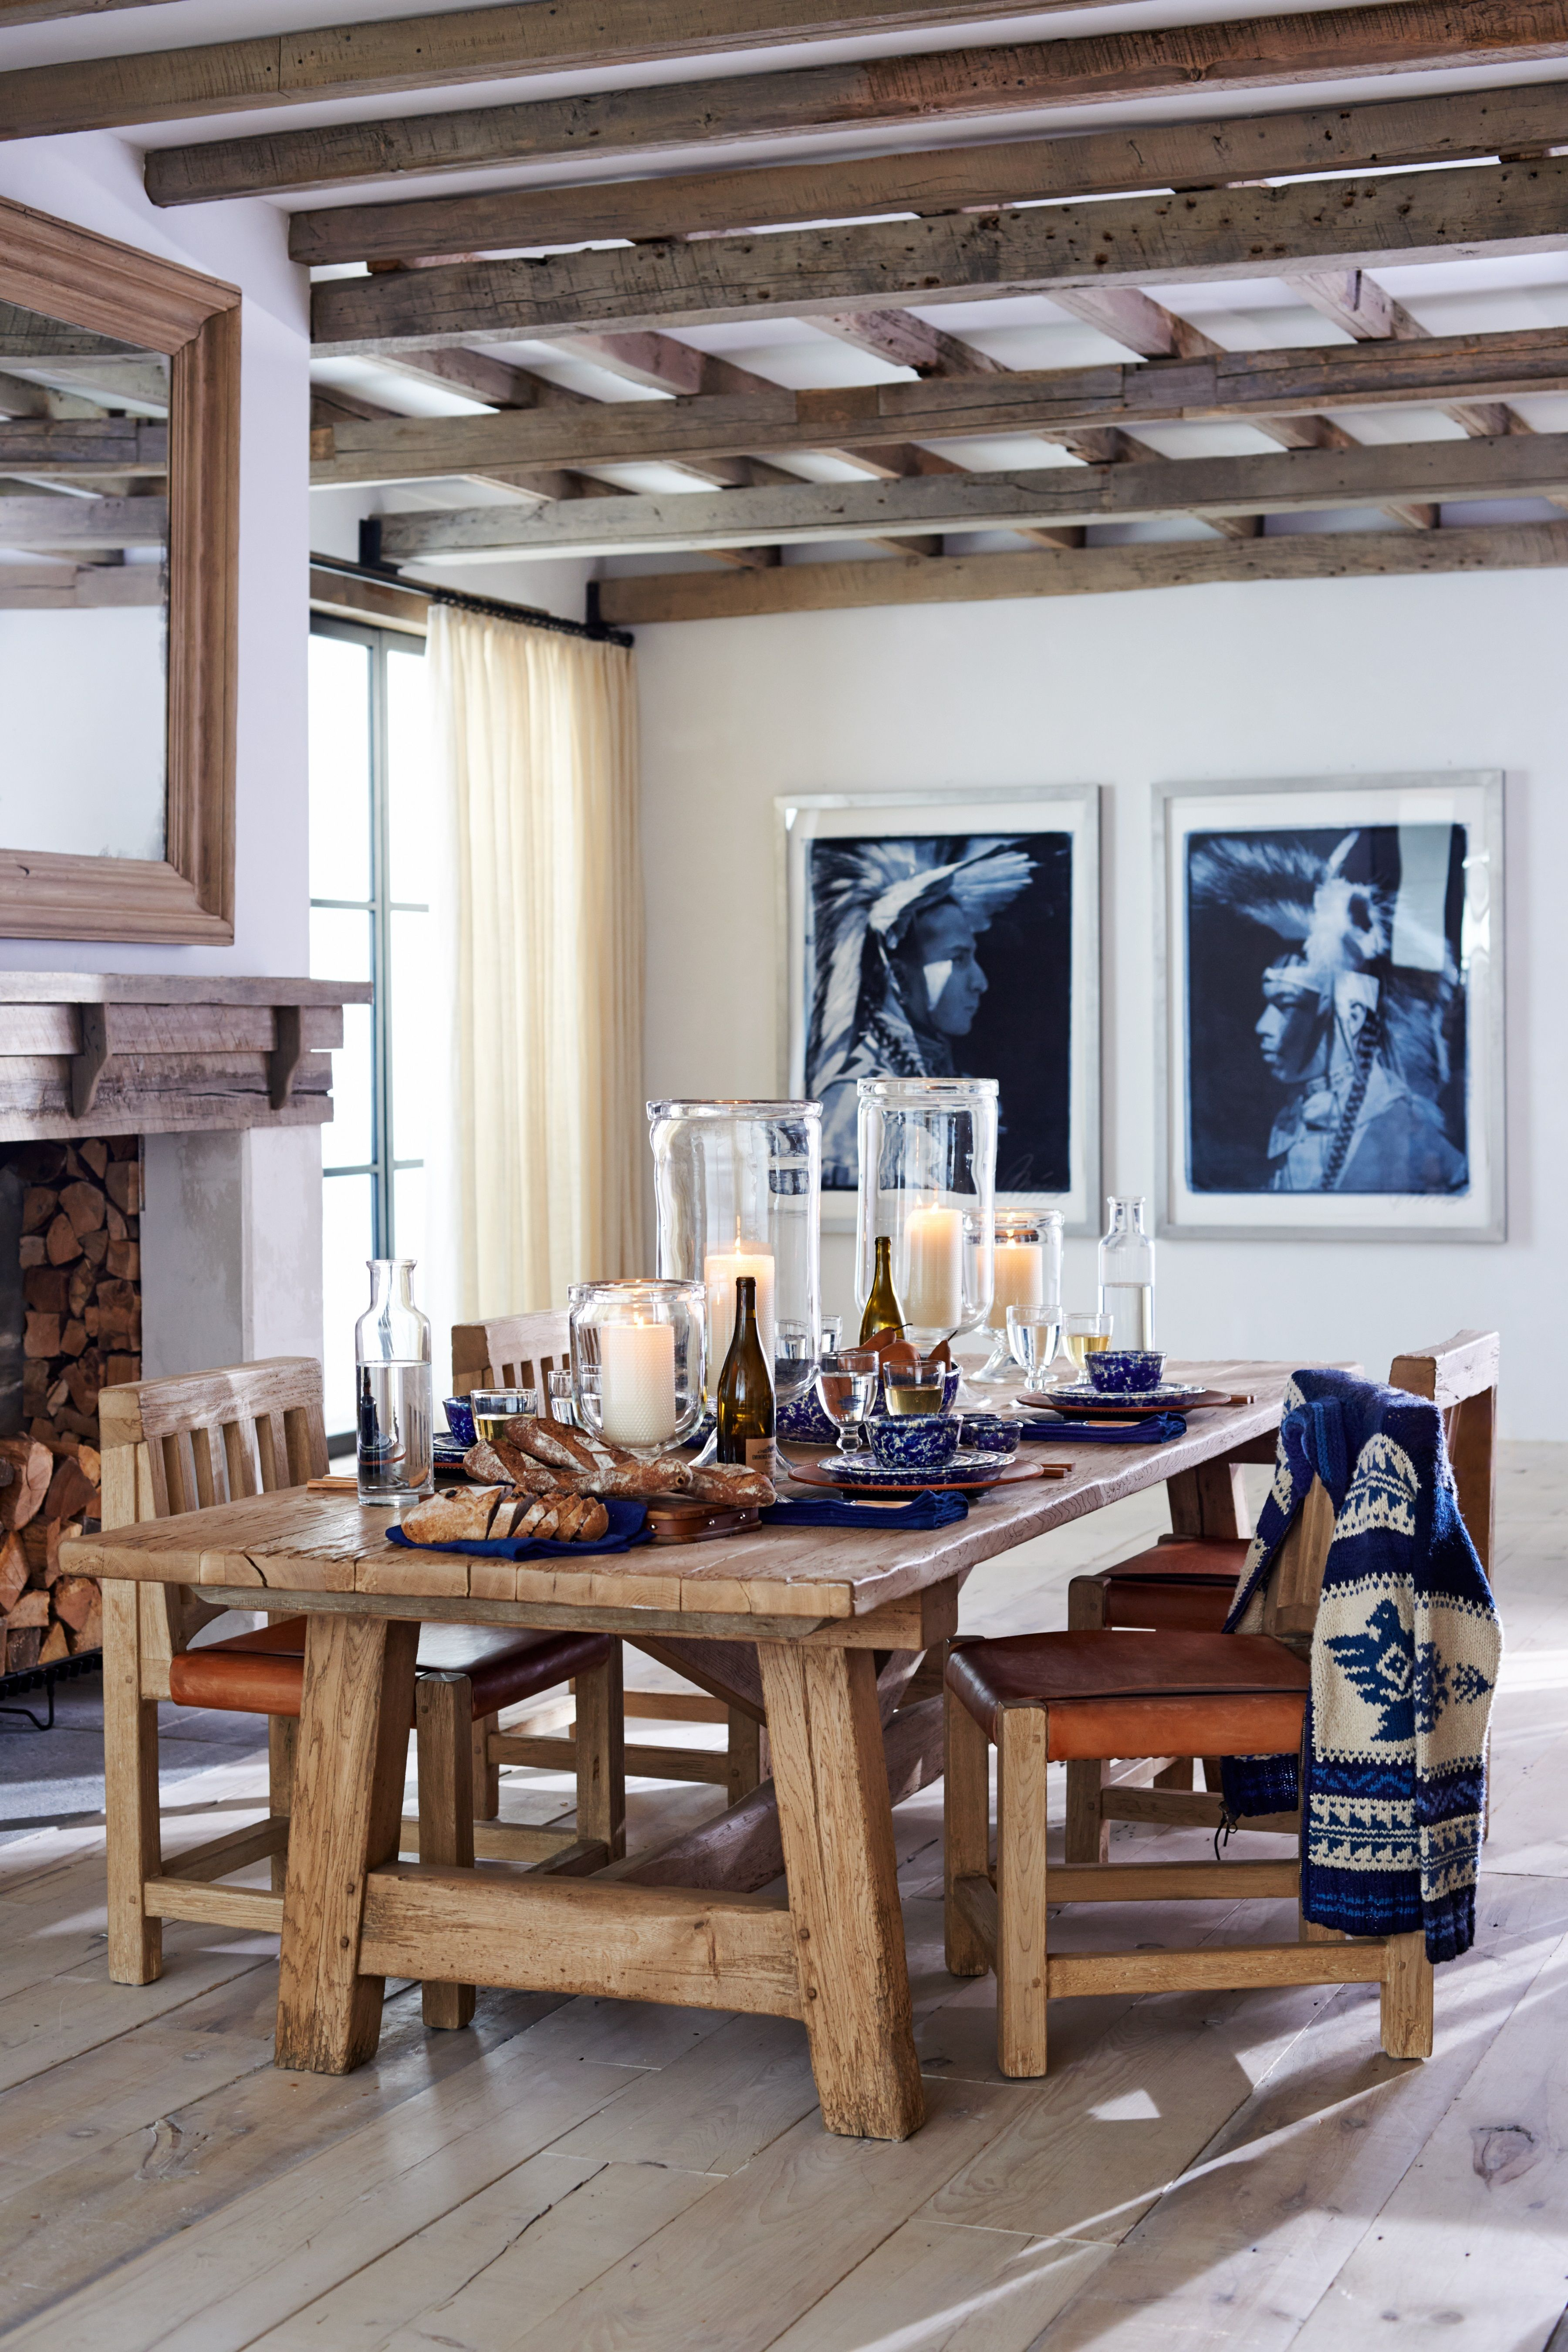 Ralph Lauren Home's rustic dining table in barn door oak sets a warm, inviting tone for gatherings.